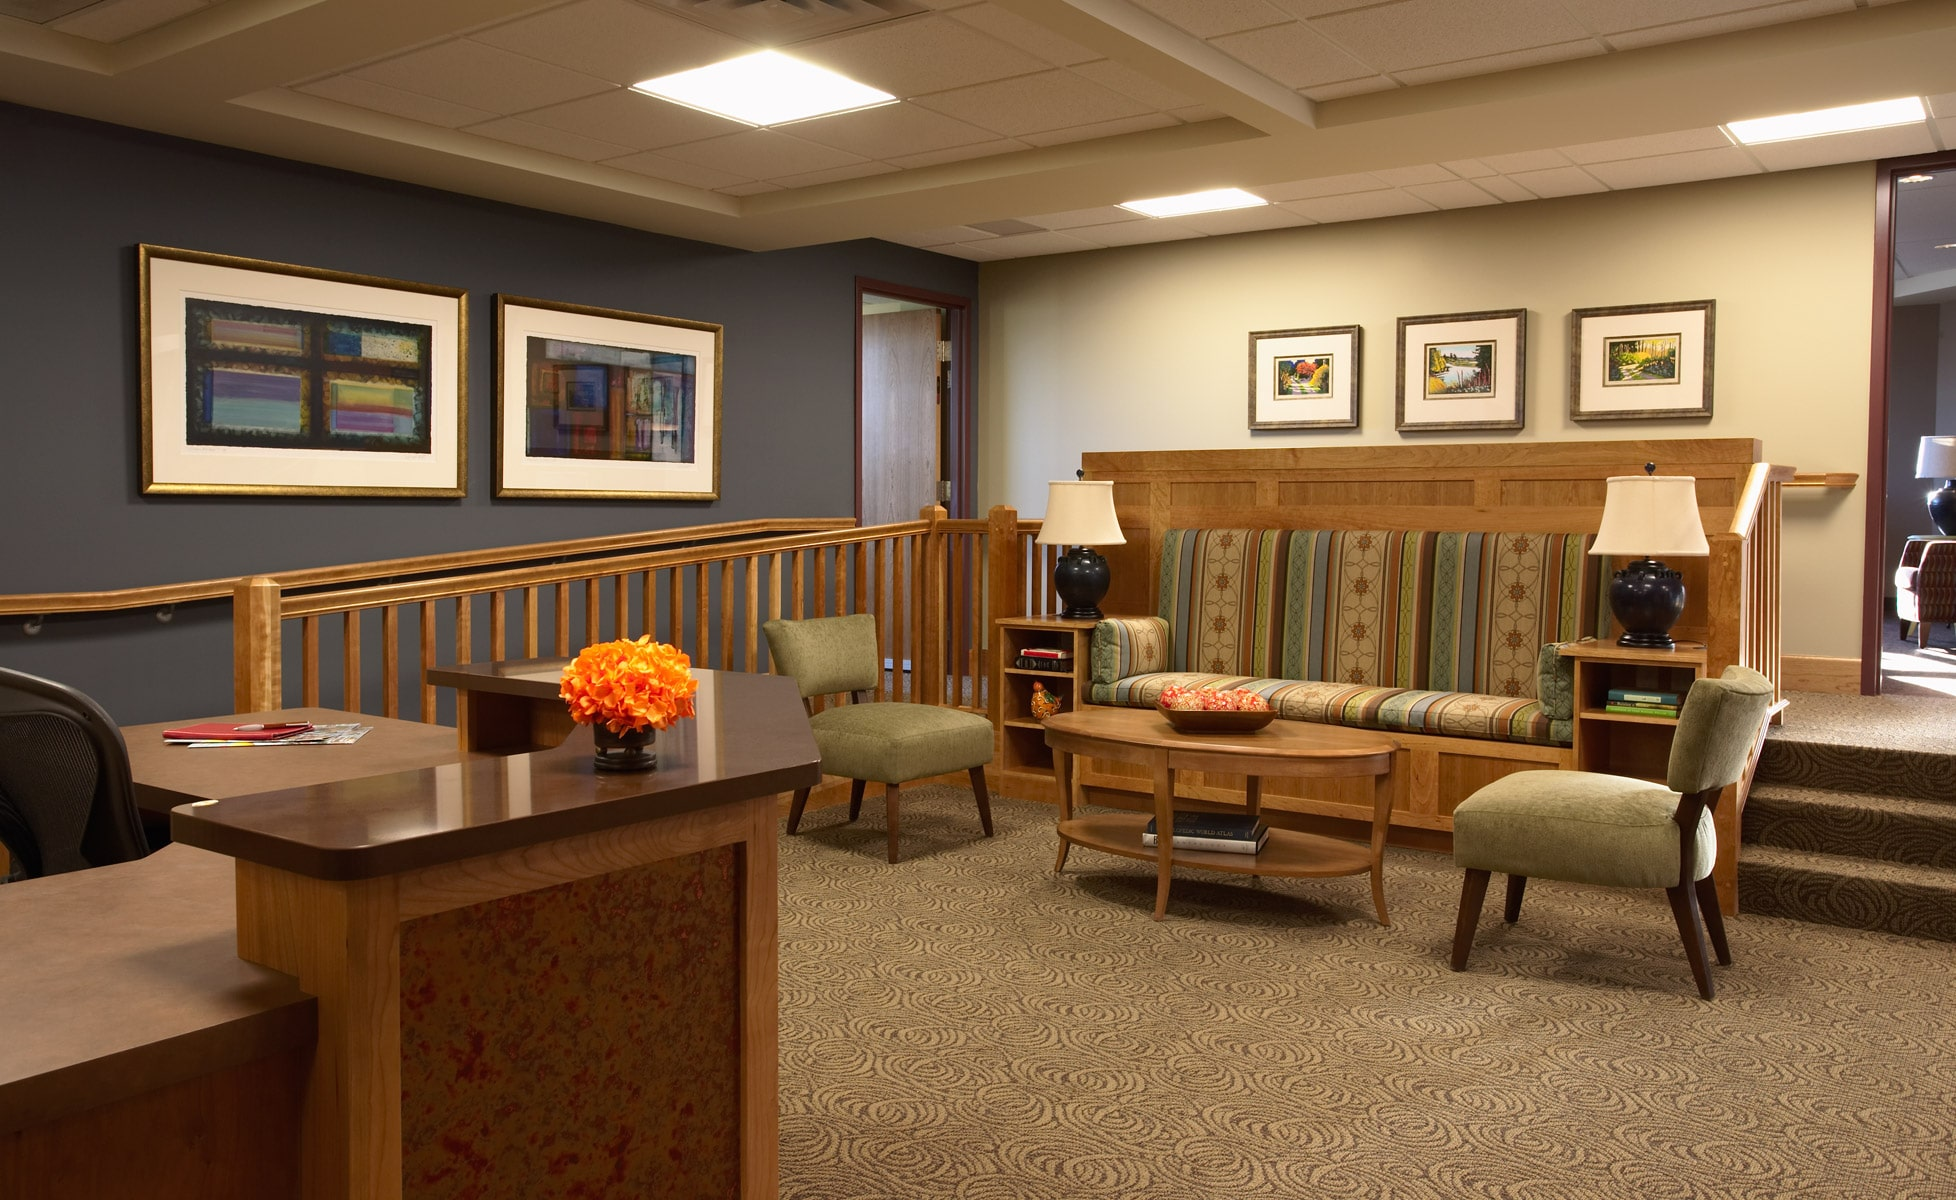 Eating-Disorder-Clinic-Reception-Design-Minneapolis-Interior-Designer.jpg